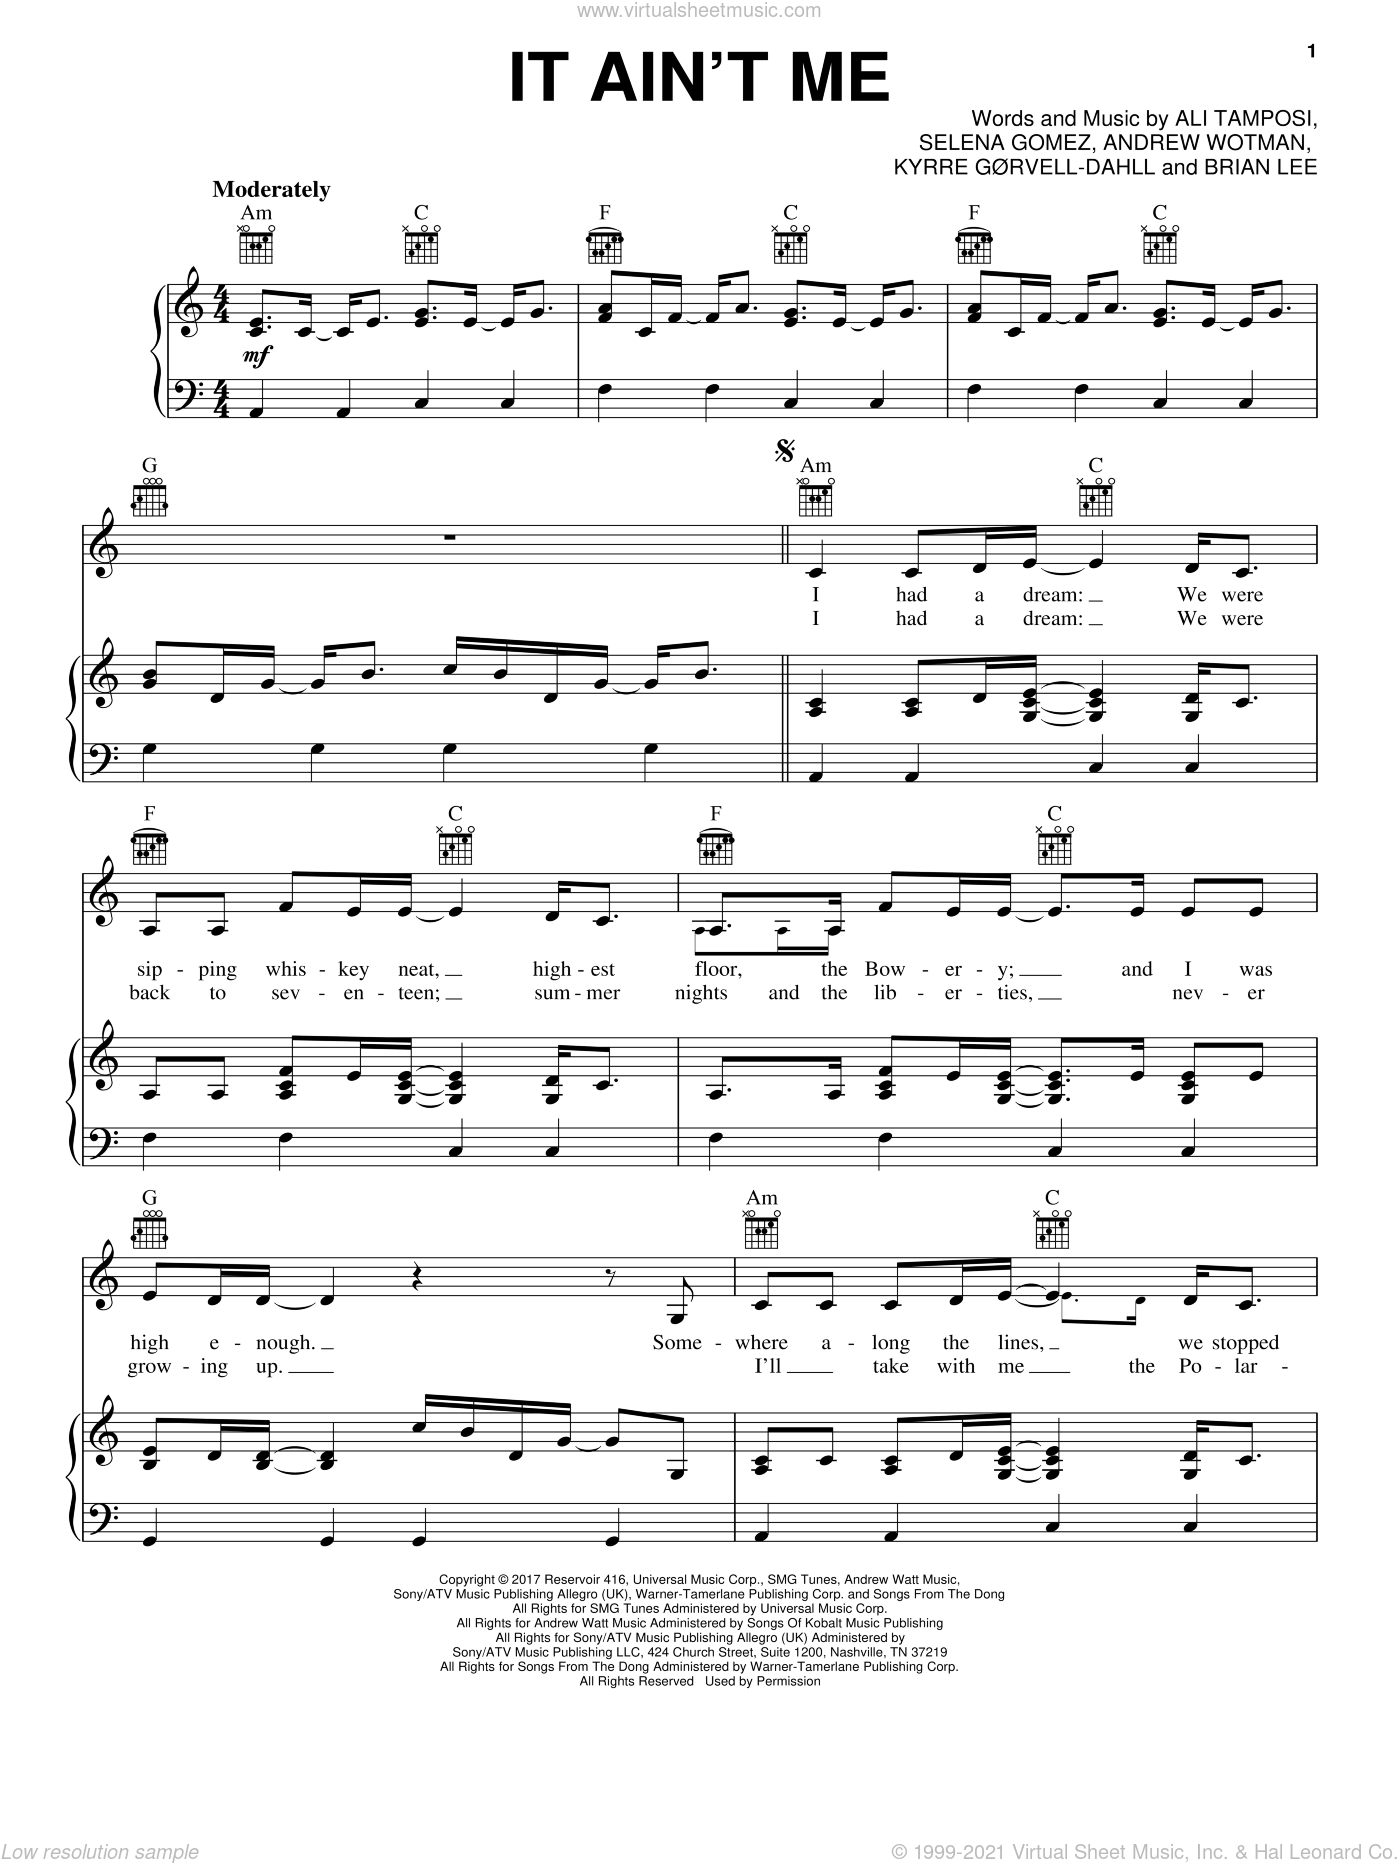 It Ain't Me sheet music for voice, piano or guitar by Kygo and Selena Gomez, Ali Tamposi, Andrew Wotman, Brian Lee, Kyrre Gorvell-Dahll and Selena Gomez, intermediate skill level